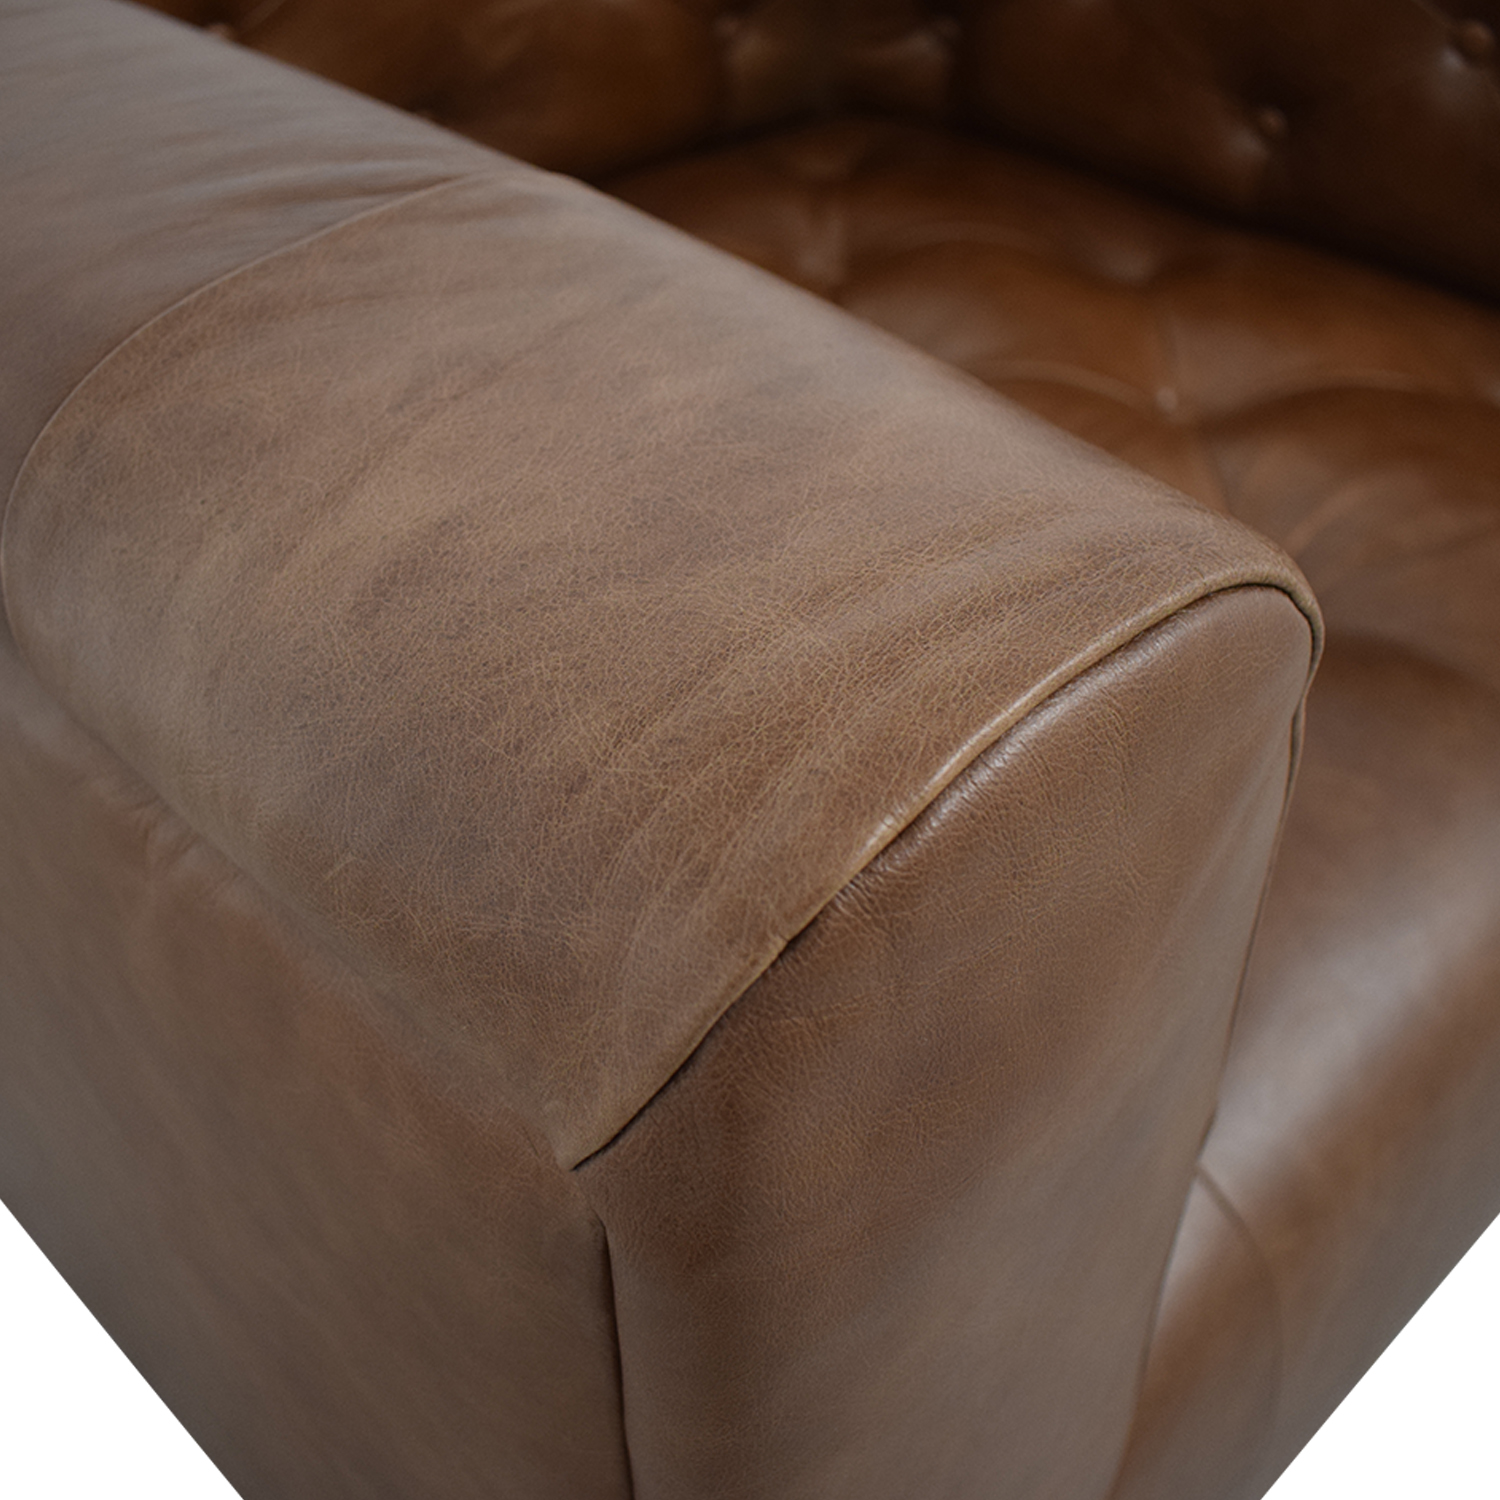 Interior Define Ms. Chesterfield Cognac Tufted Accent Chair brown